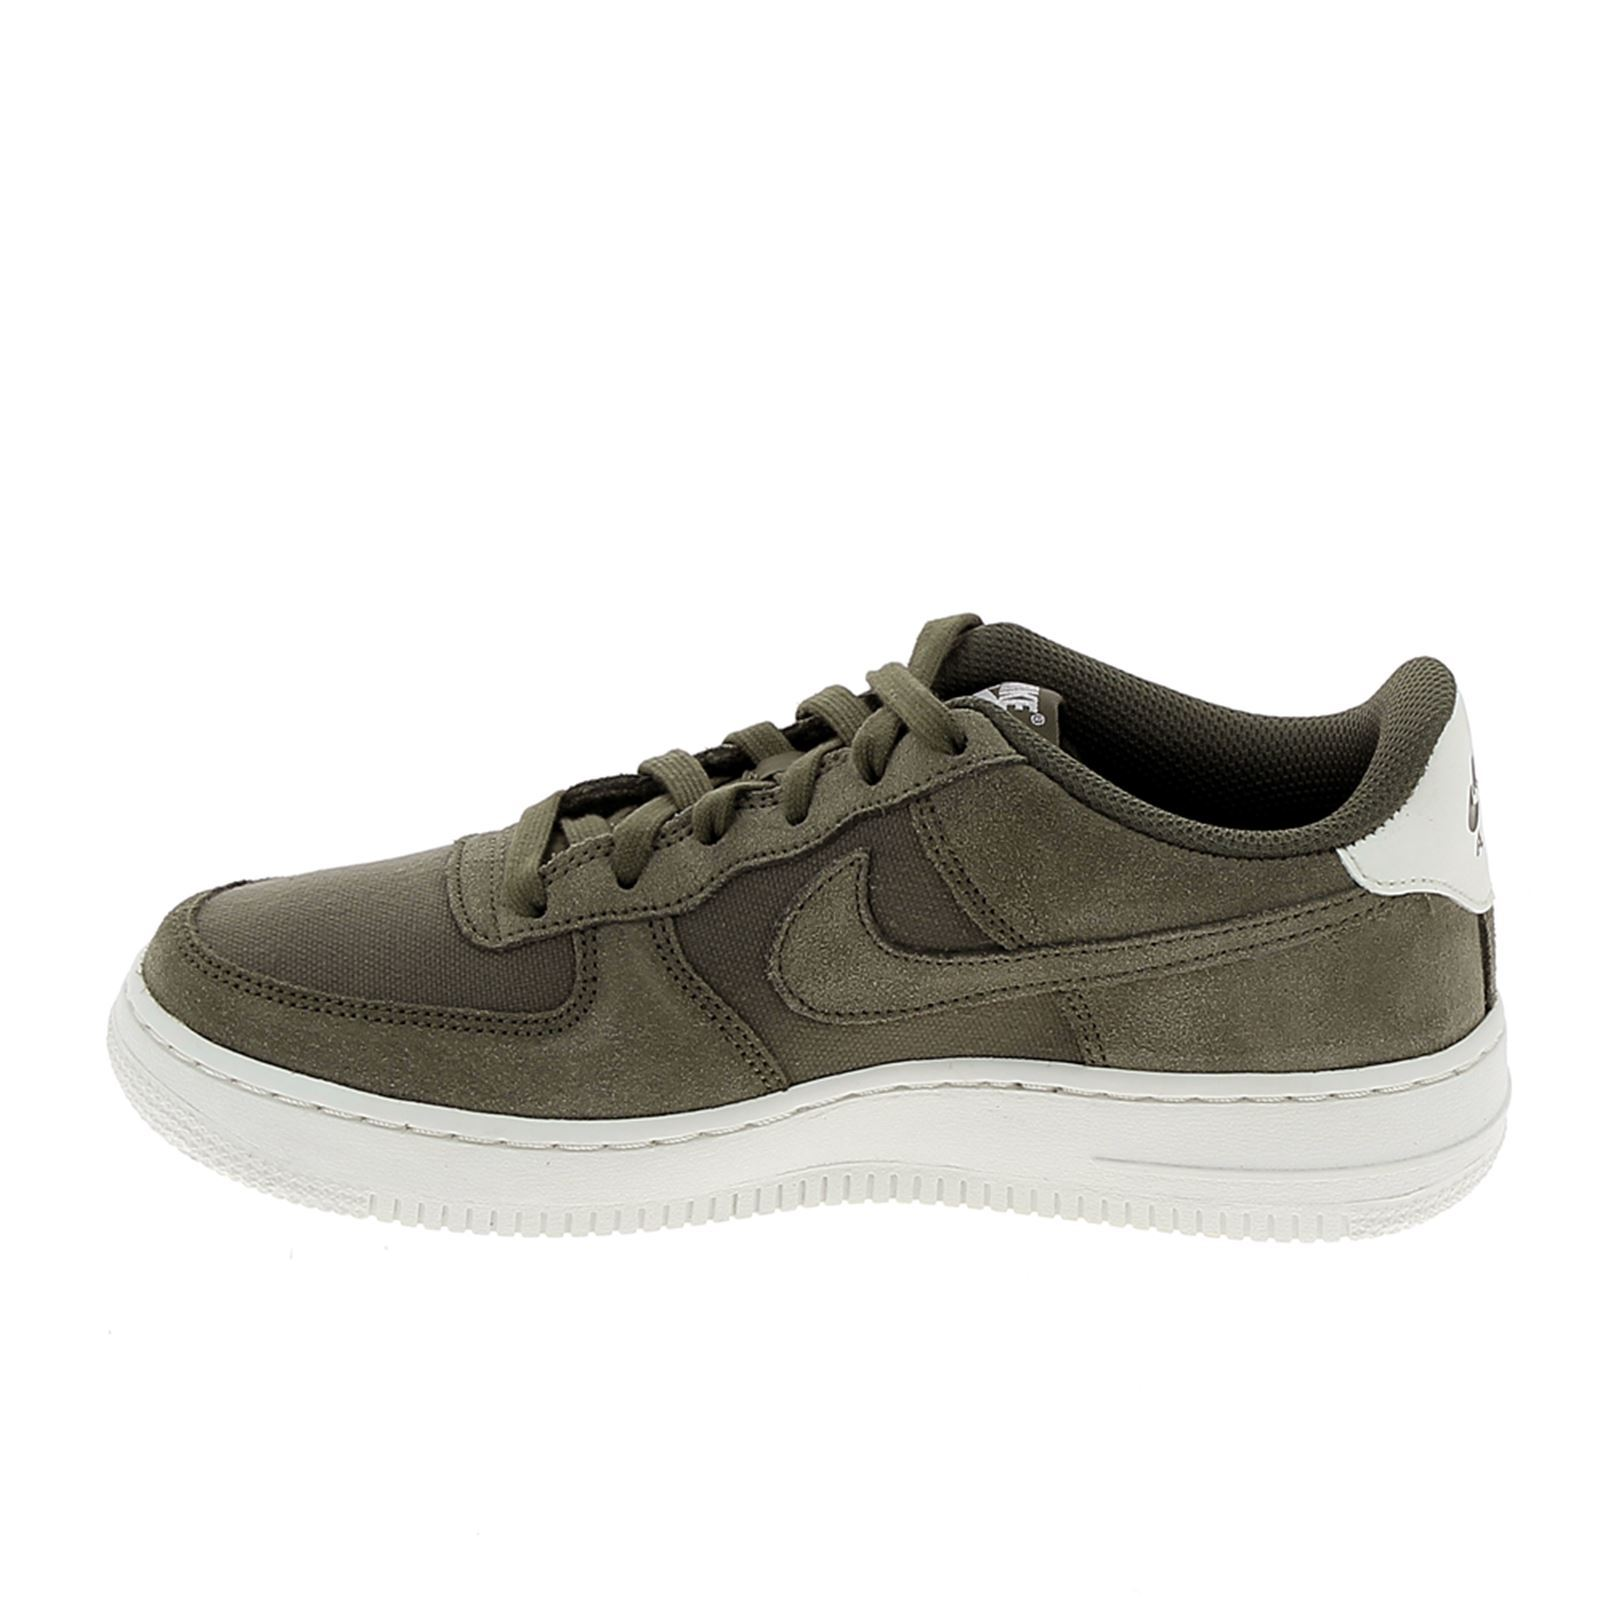 grand choix de 6ccbc 9a55a Air Force 1 suede - Baskets basses - vert